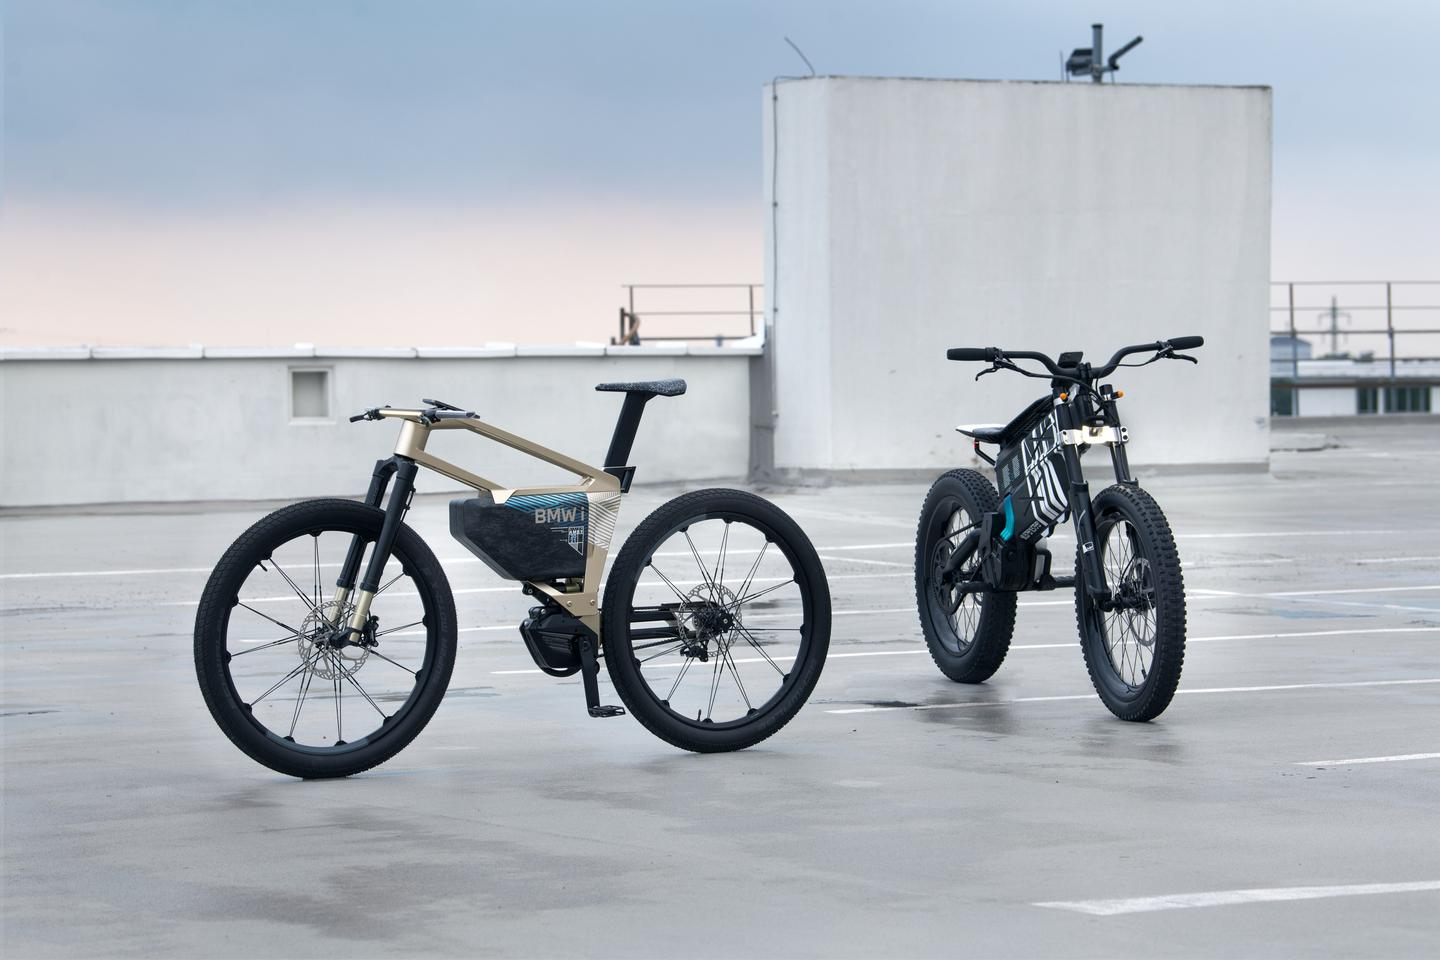 The i Vision AMBY and Vision AMBY are designed to bridge the gap between ebike and motorcycle